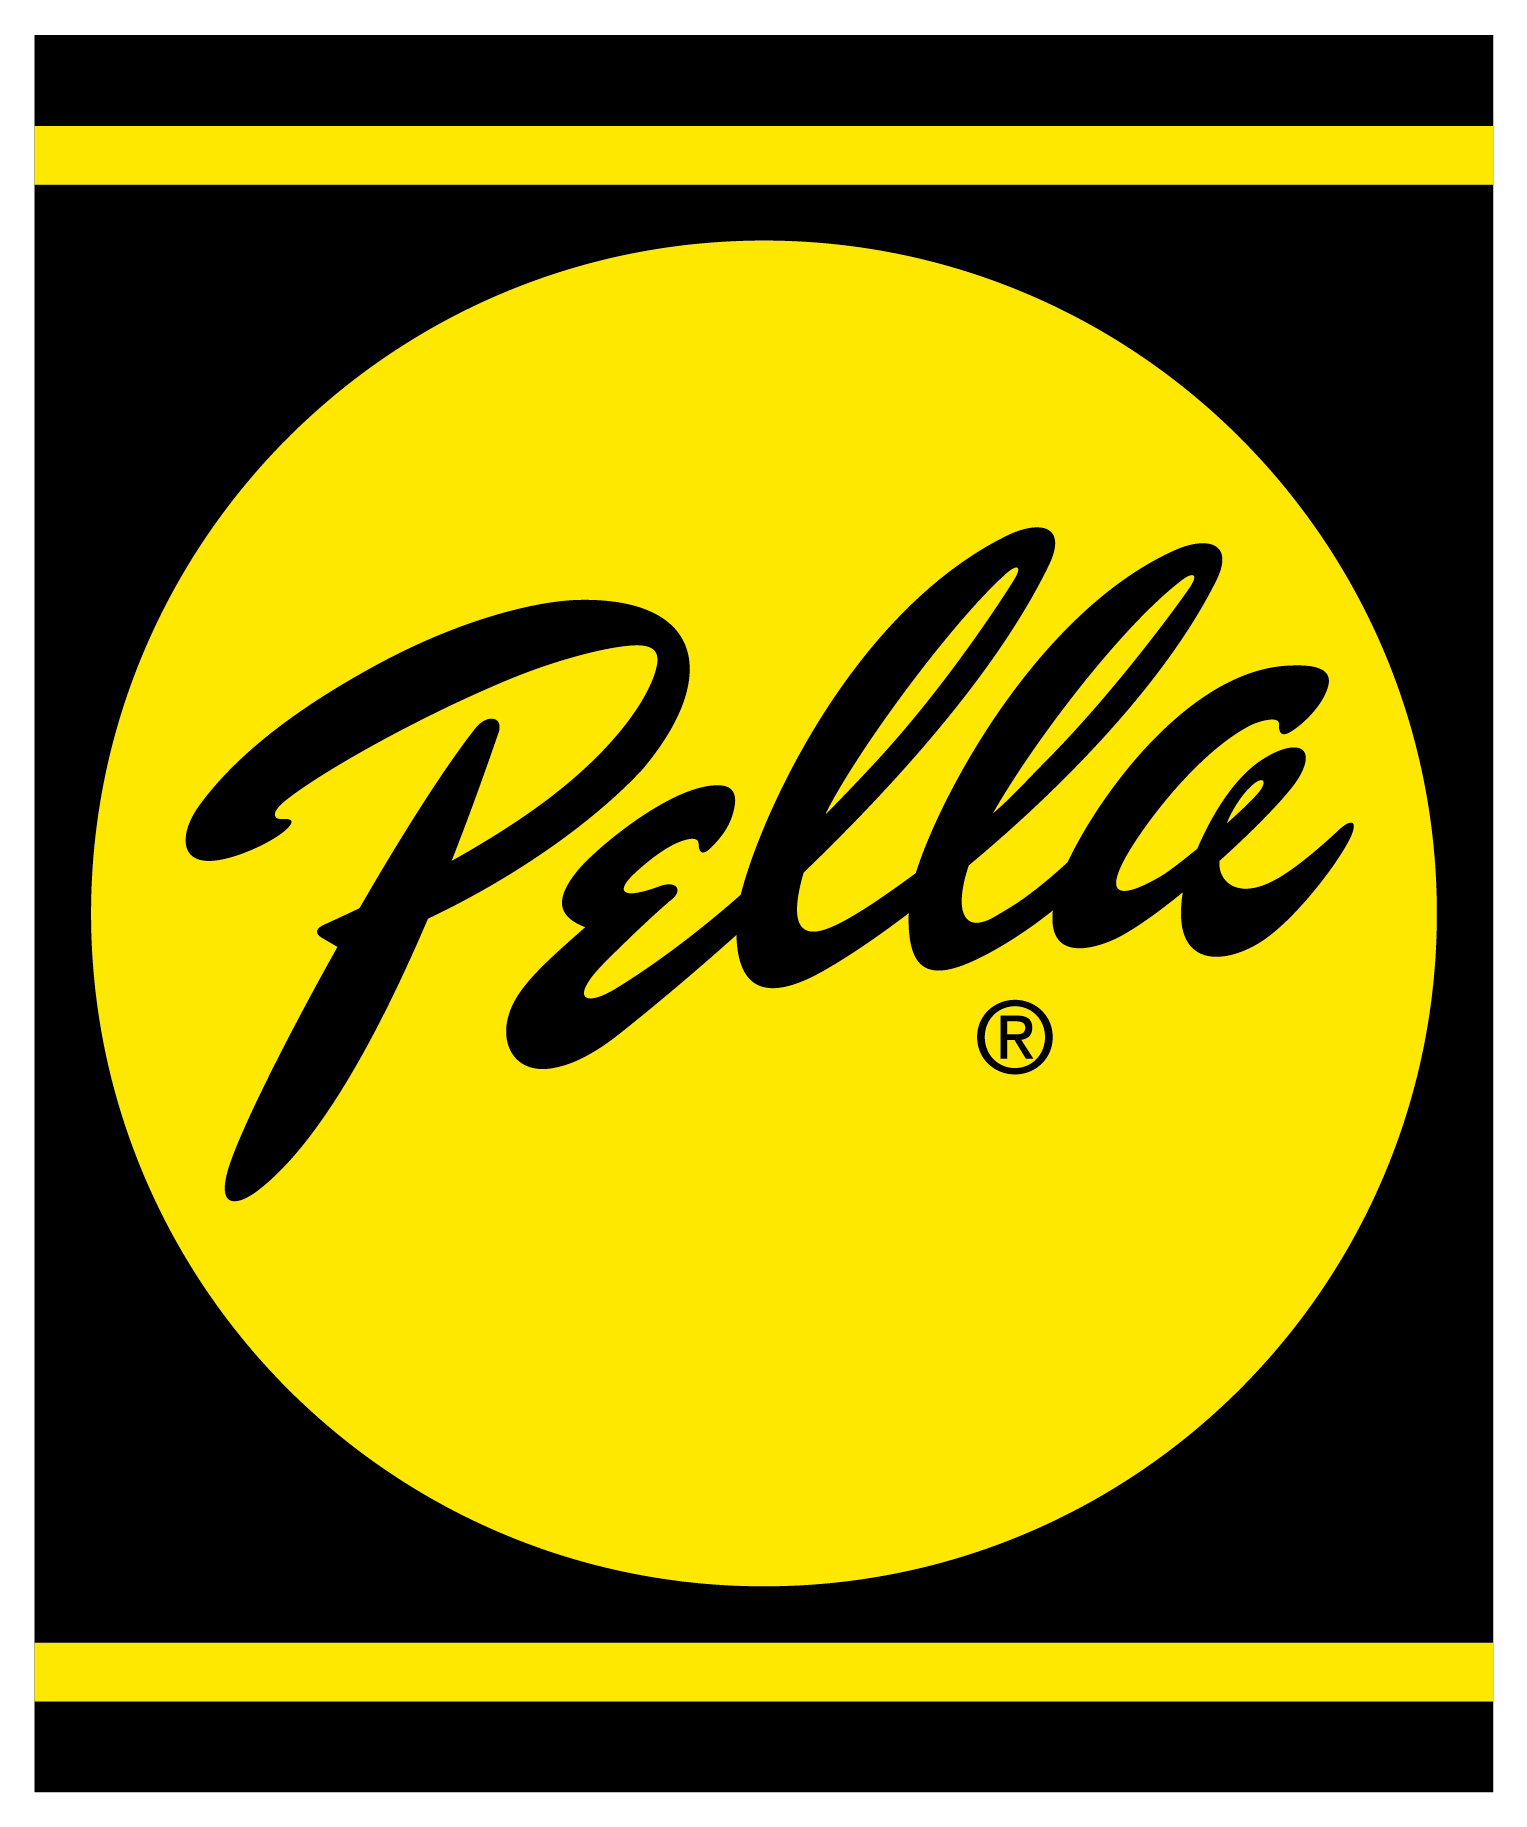 Pella Windows and Doors - Plymouth, MN 55441 - (952)915-6080 | ShowMeLocal.com